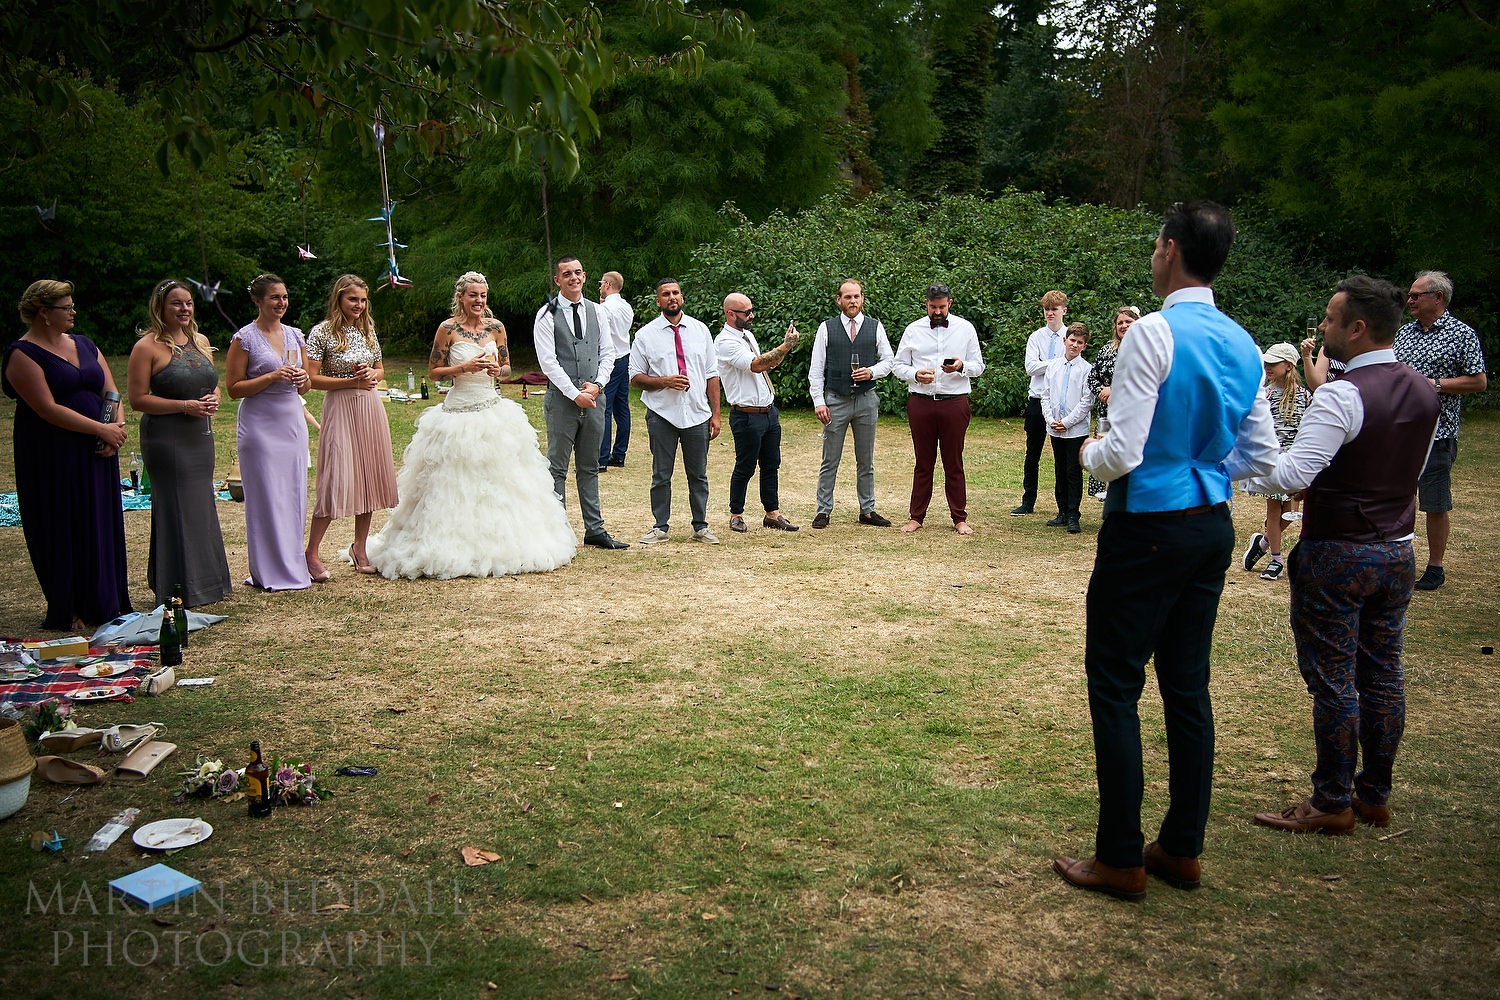 Wedding speeches in the park